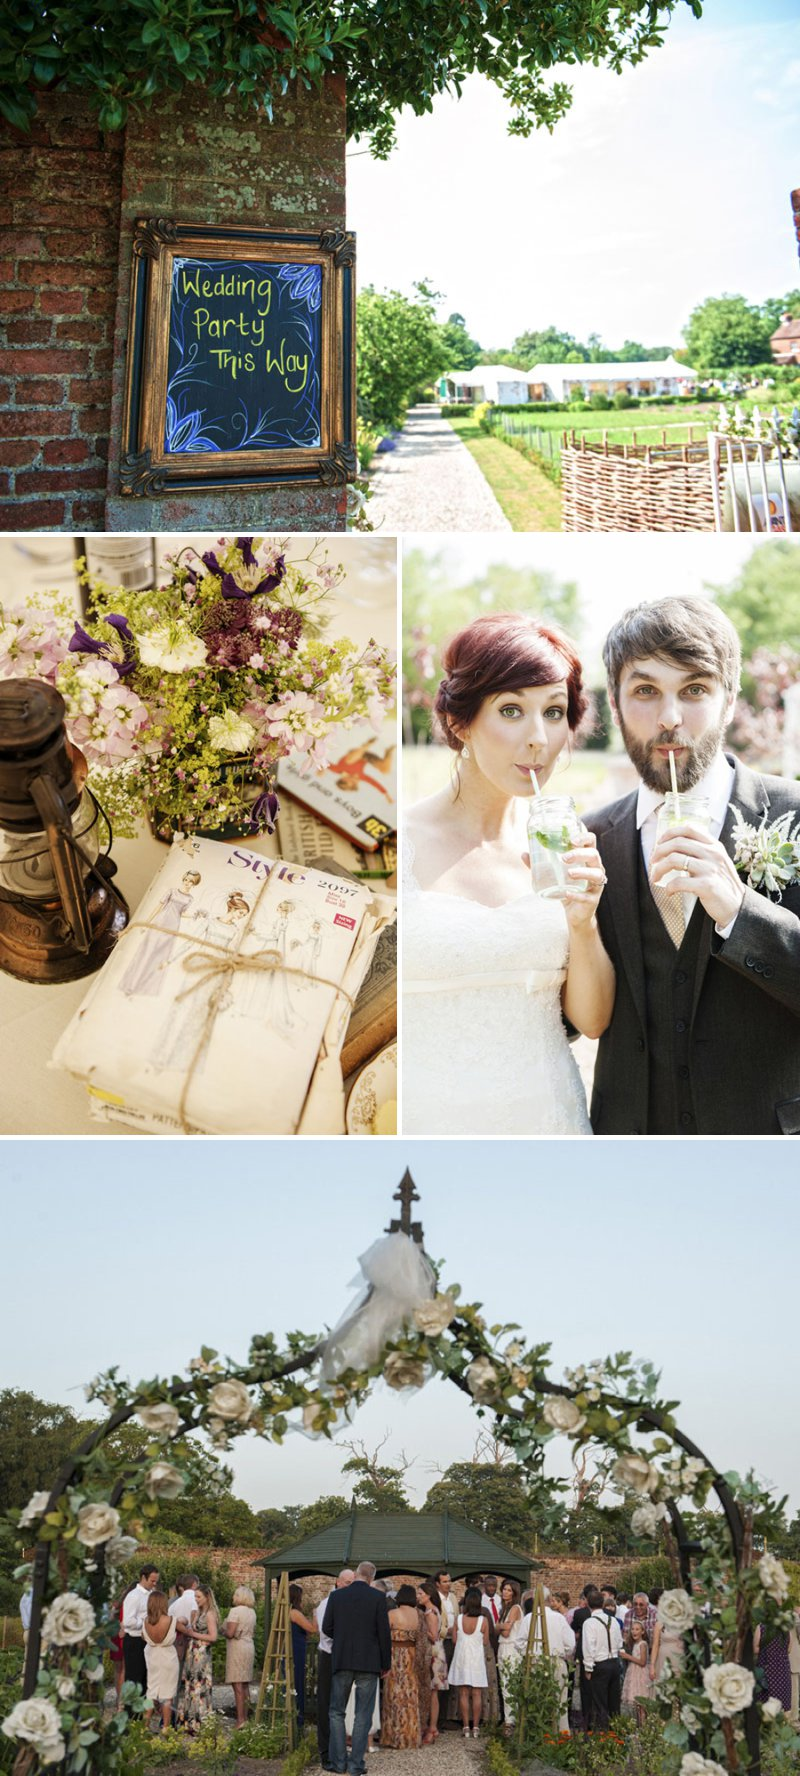 Vintage Inspired Wedding At The Secret Garden Kent With Bride In Pronovias Gown With Peony Bouquets Groom In Navy Suit From Next With Fun And Quirky Wedding Photography From Ben Wetherall 1 Fun And Games In The Secret Garden.